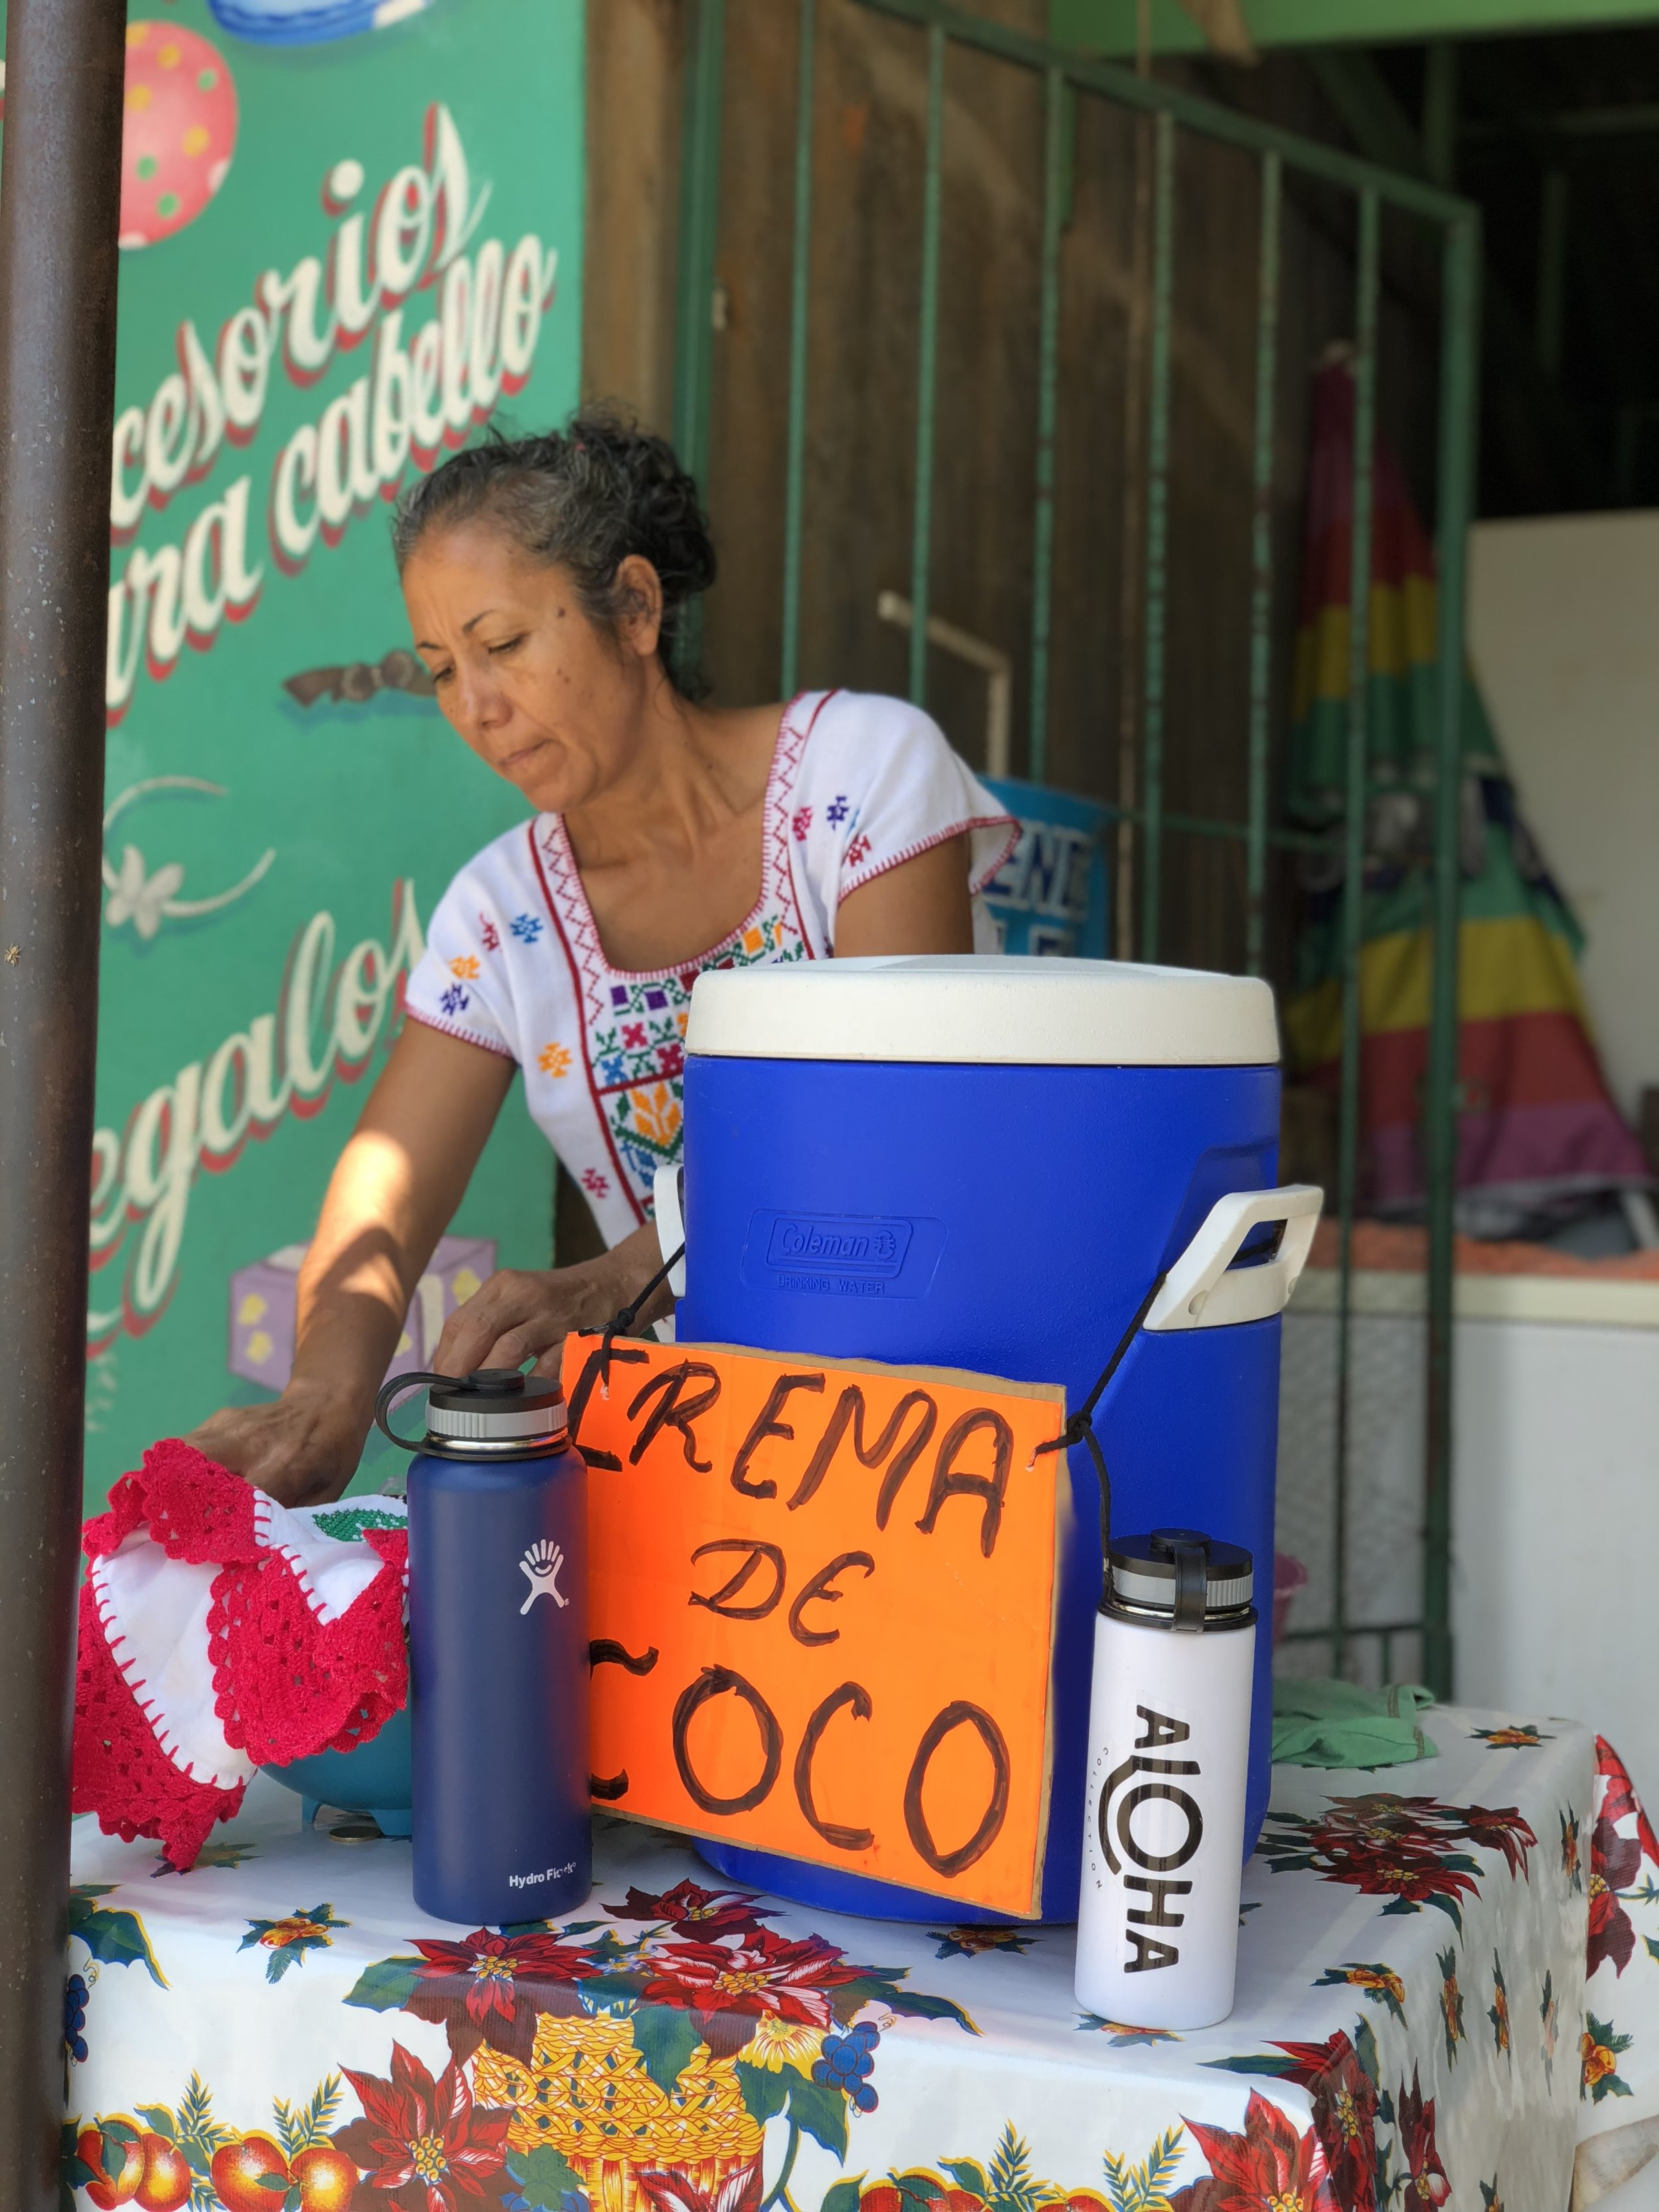 Ninfa has been selling her homemade Coconut Cream here for years. Traditionally people drink it out of a plastic baggie that is tied at the top for transport home. We dedicated 2 of our  hydroflask  waterbottles to house the cream and avoid the plastic all together.